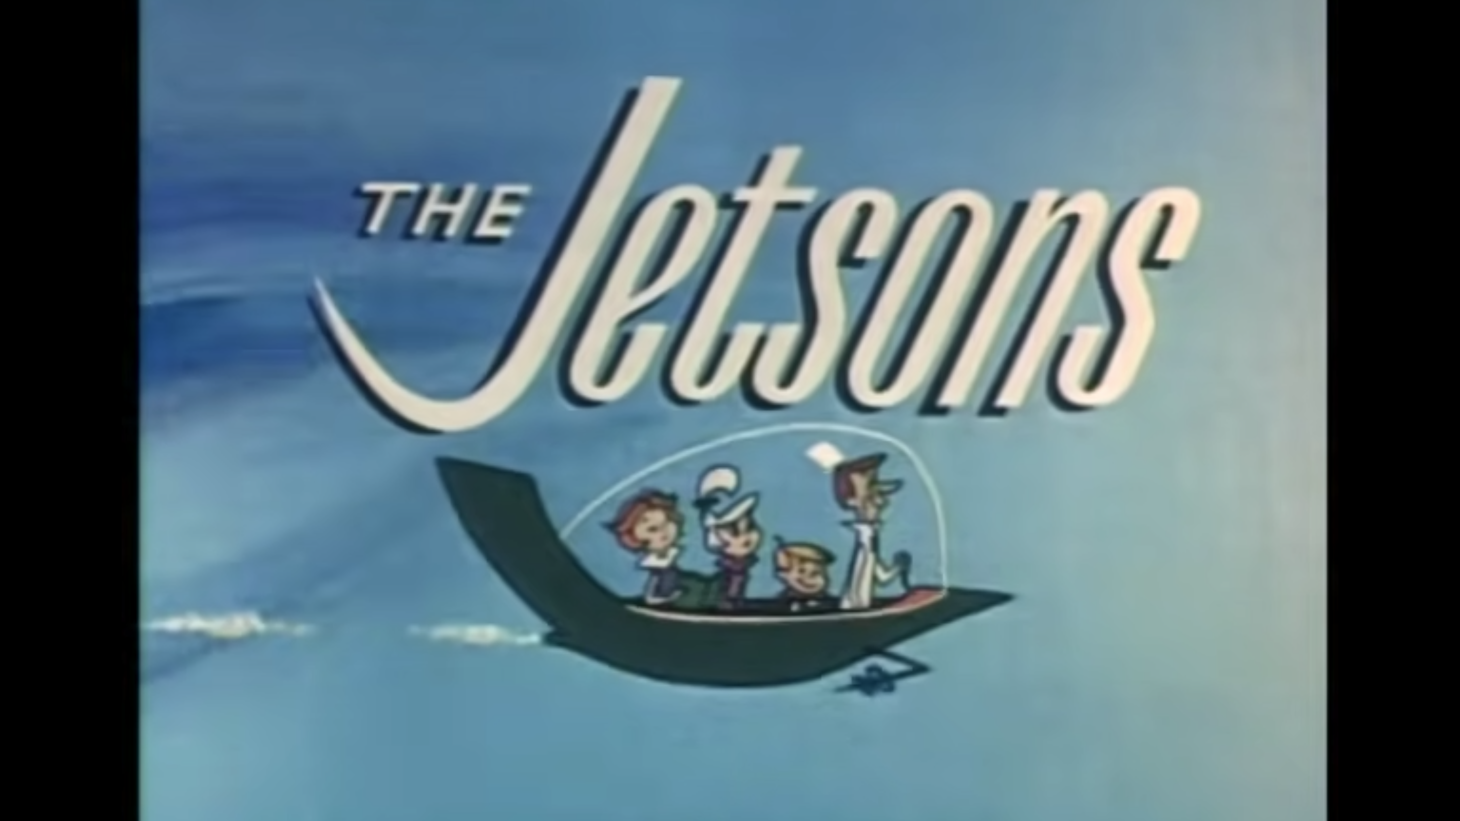 """In """"The Jetsons,"""" the flying car is integrated into regular life. """"It's the version of the American future,"""" says comedian Dana Gould, who worked with Warner Bros. on a potential reboot of """"The Jetsons,"""" which didn't get picked up."""